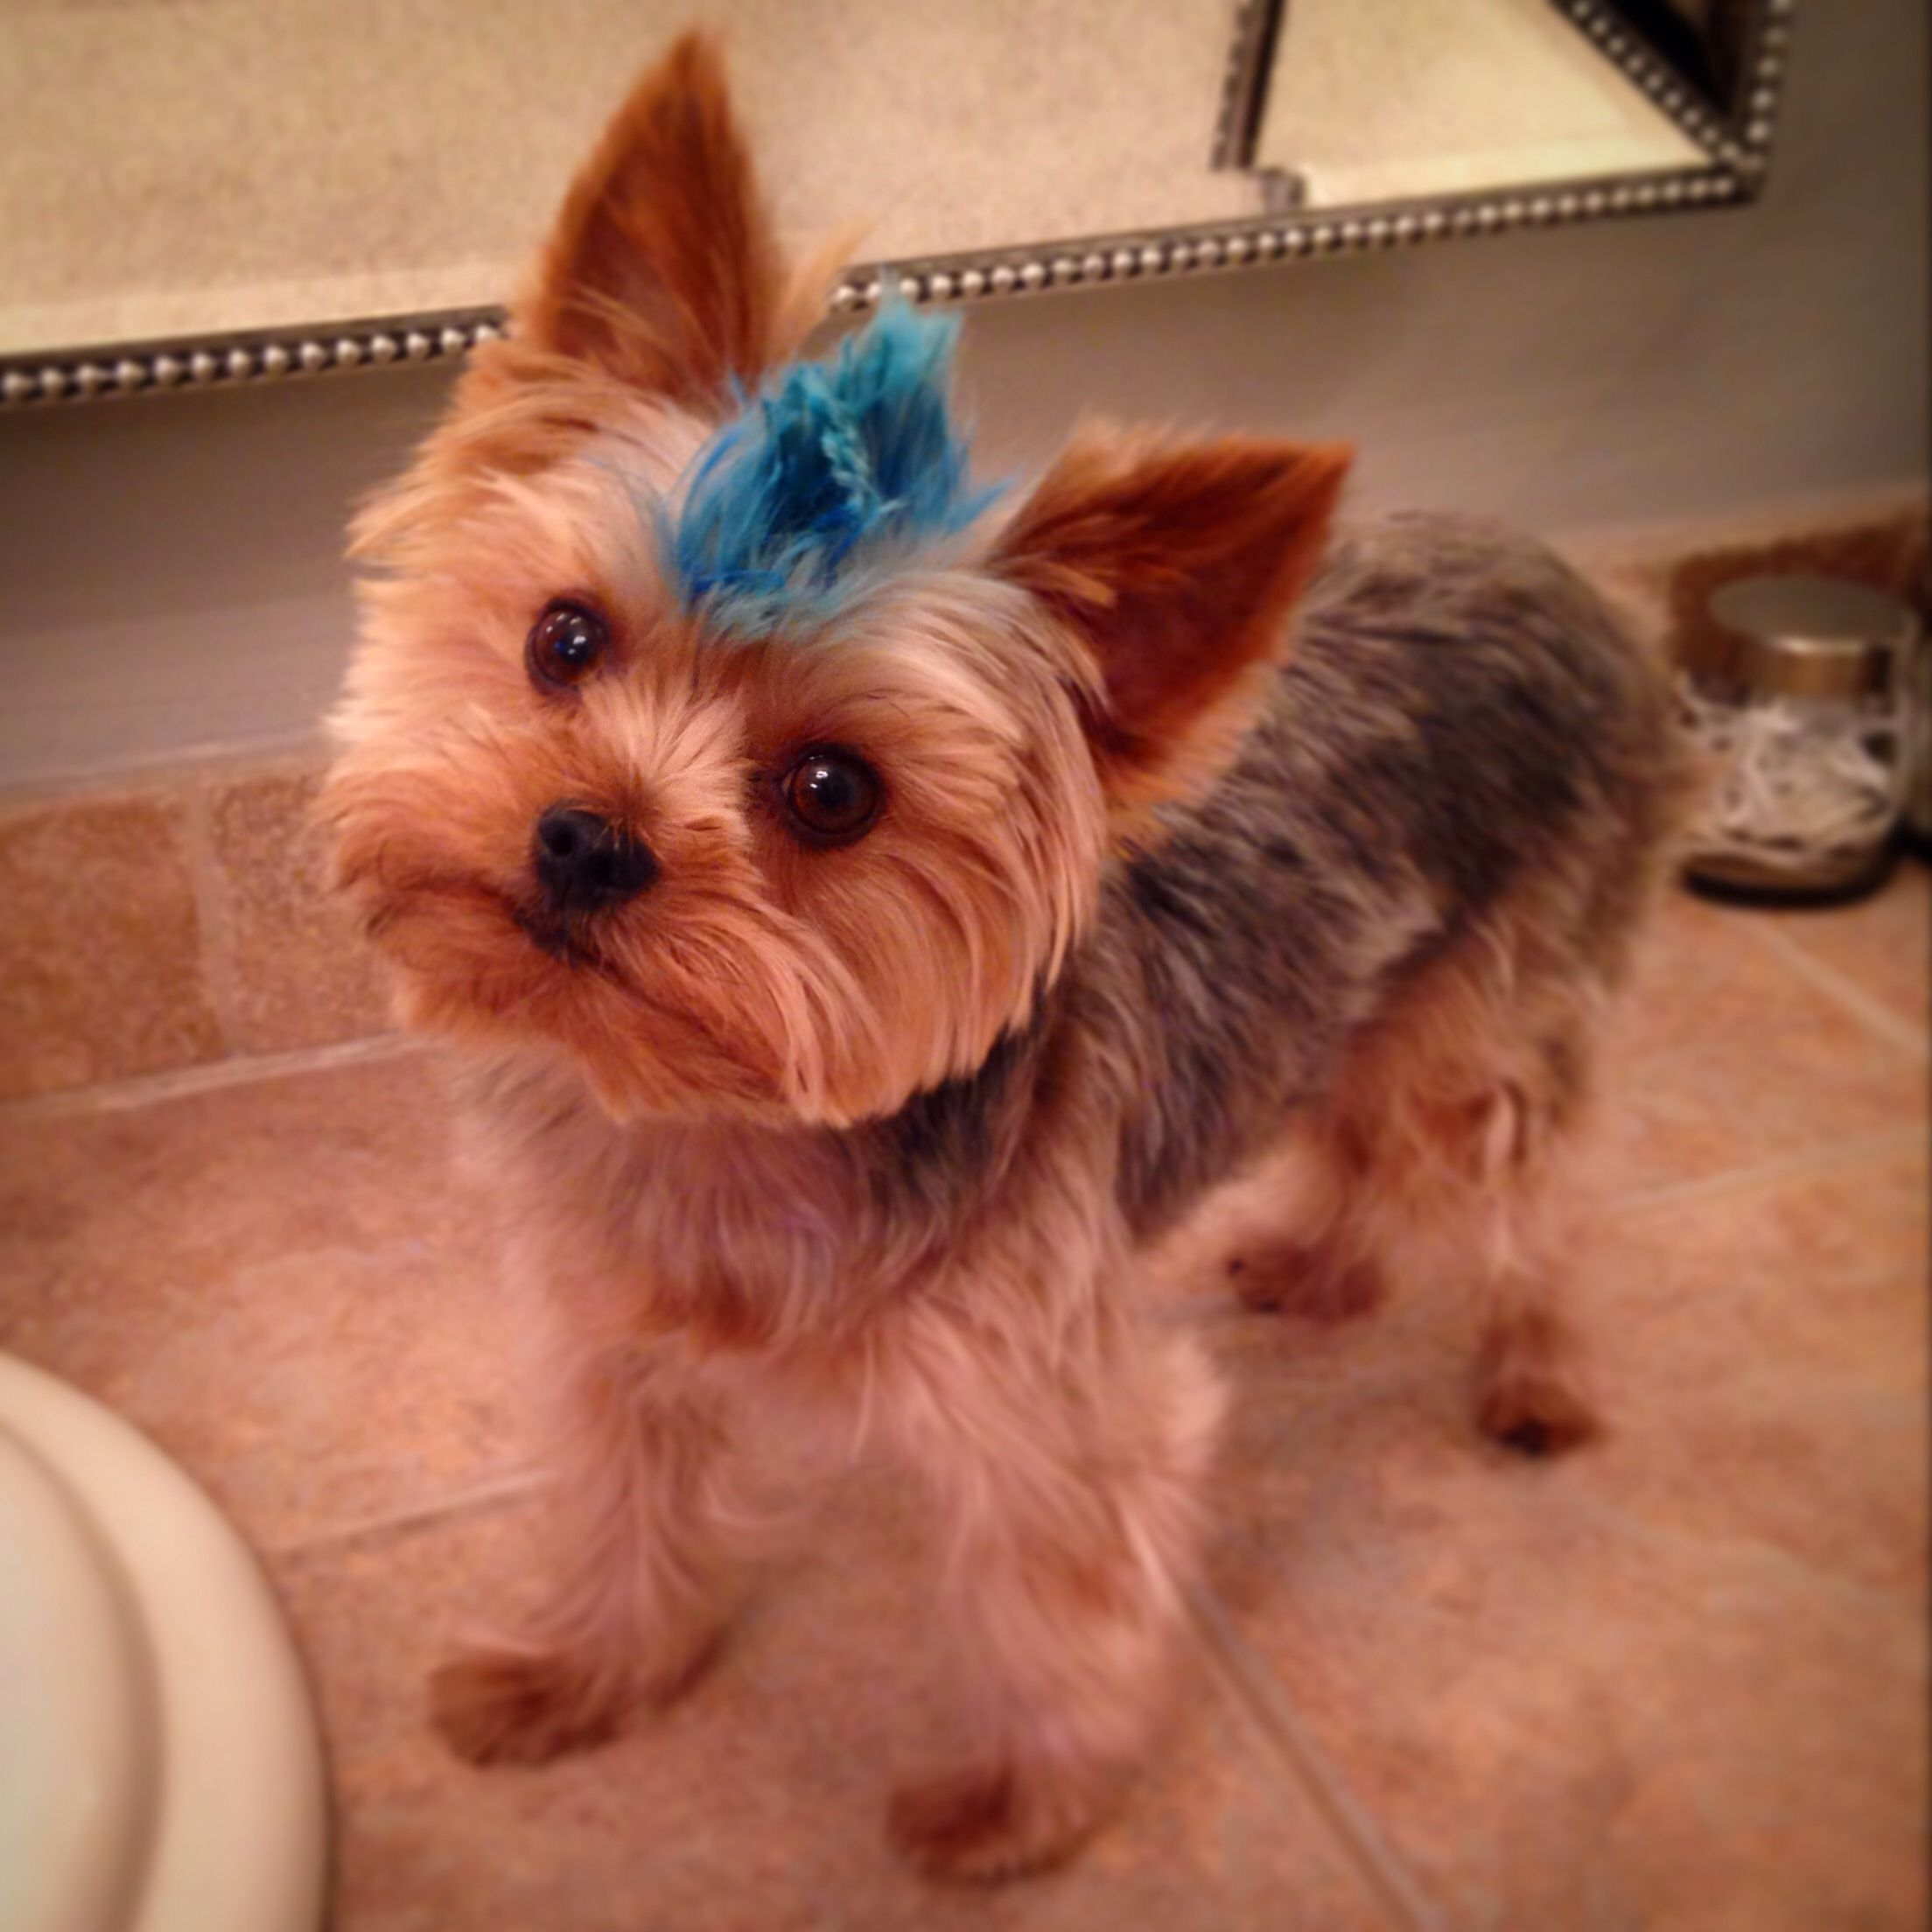 The Cutest Thing Ever So Doing This To My Buddy Ech Yorkie Yorkshire Terrier Dog Grooming